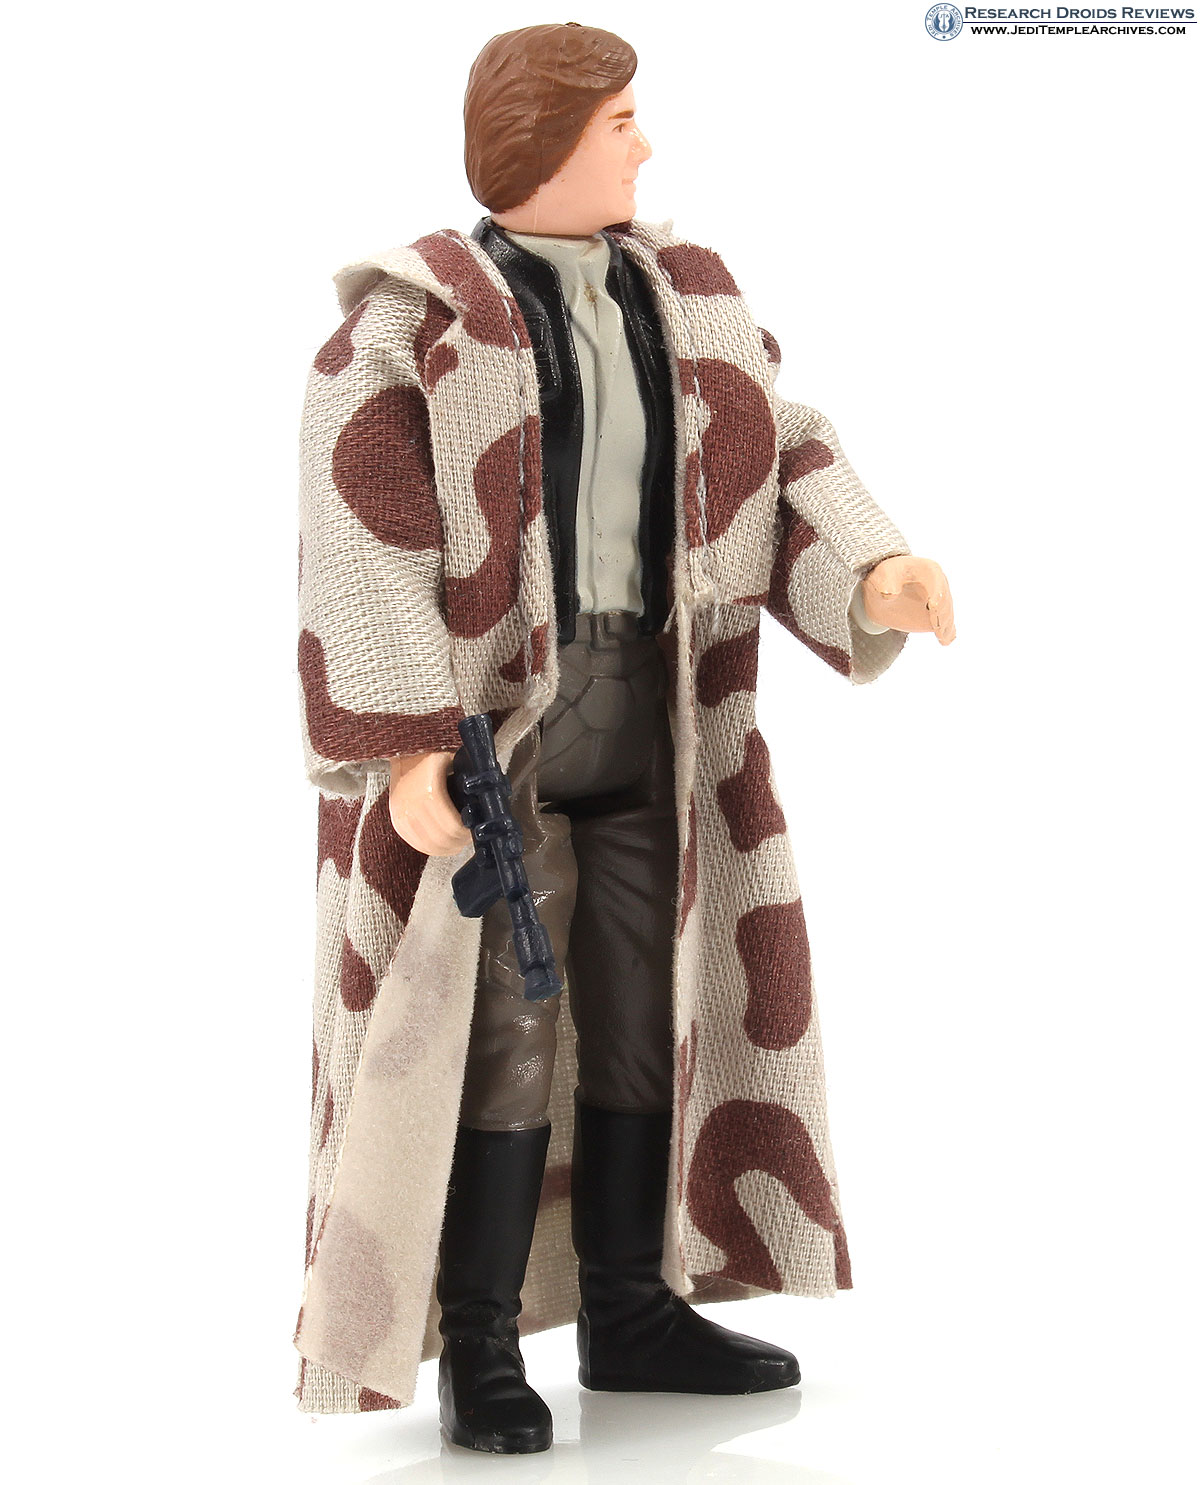 Han Solo in Trench Coat (Black Lapels)